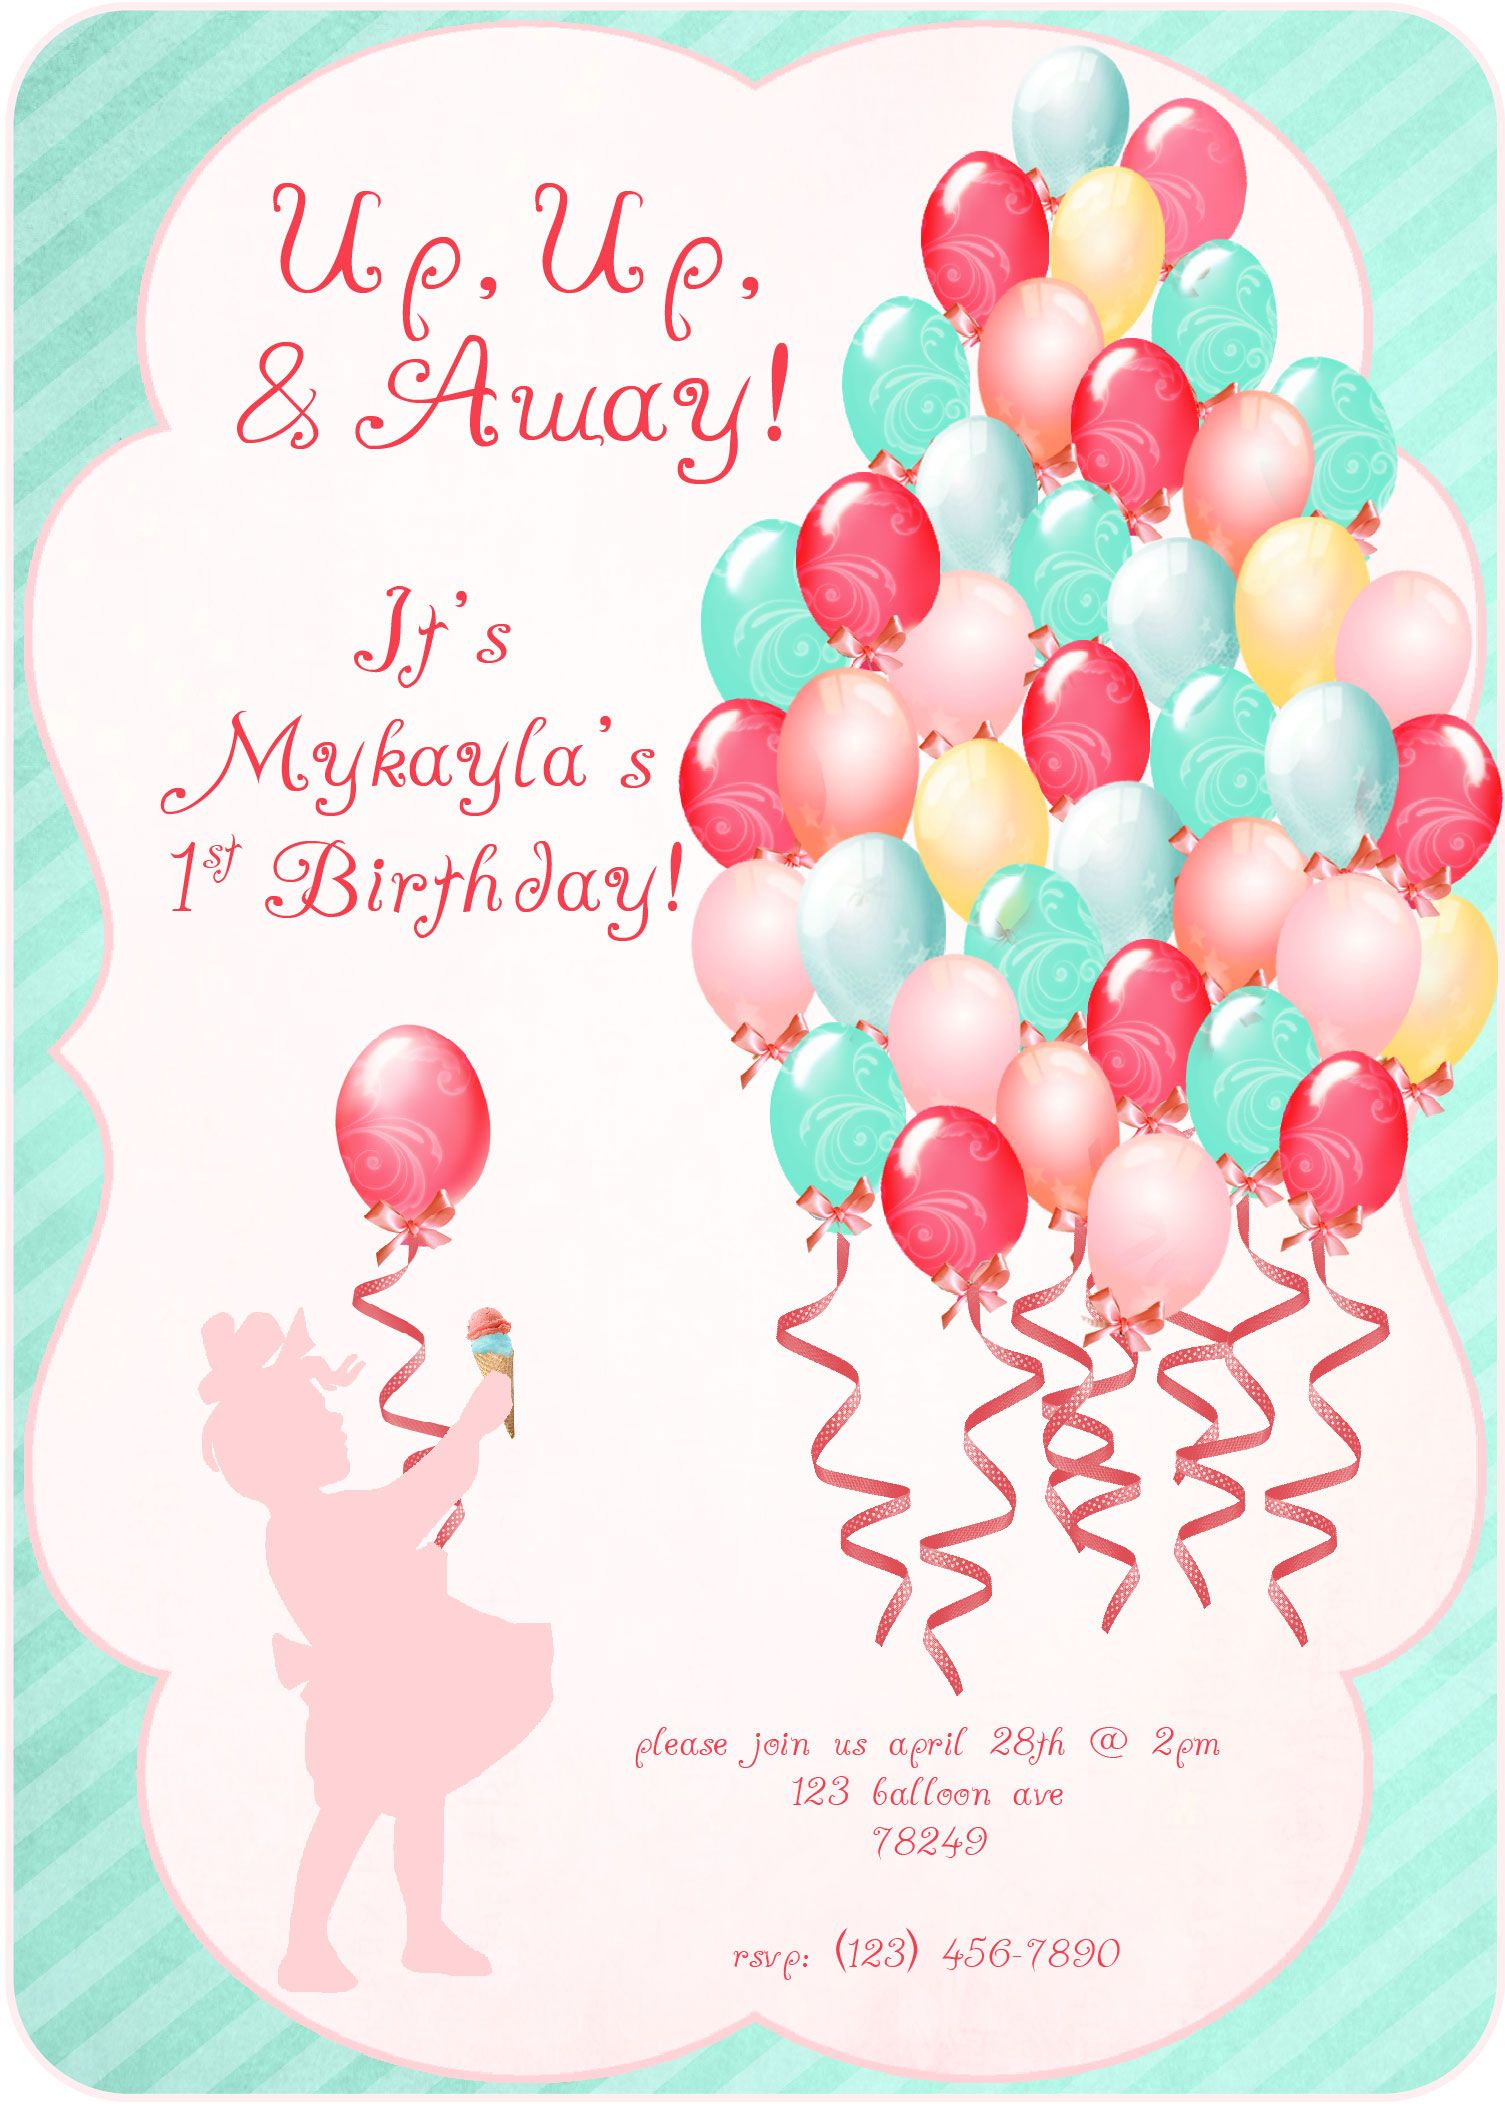 balloon party invitation | Up, Up, & Away! Parties & Ideas ...